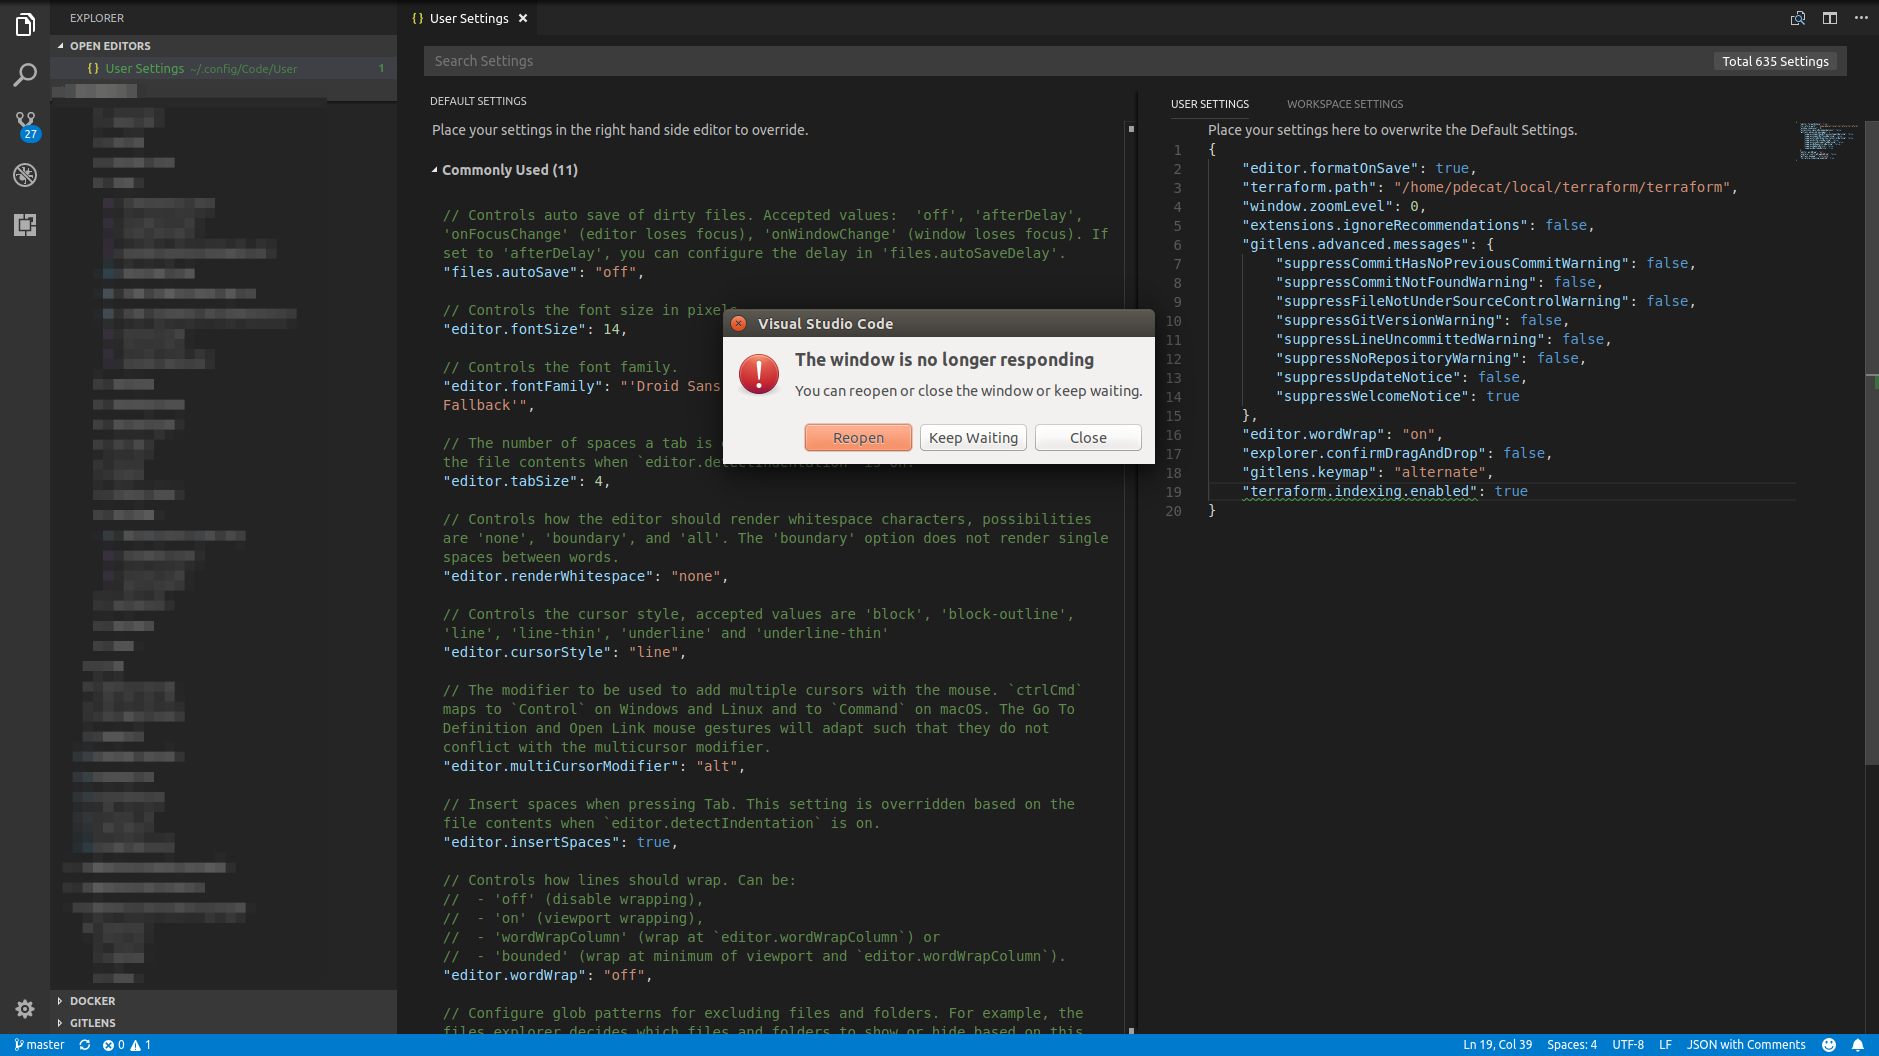 When terraform indexing enabled is true, Code UI freezes on